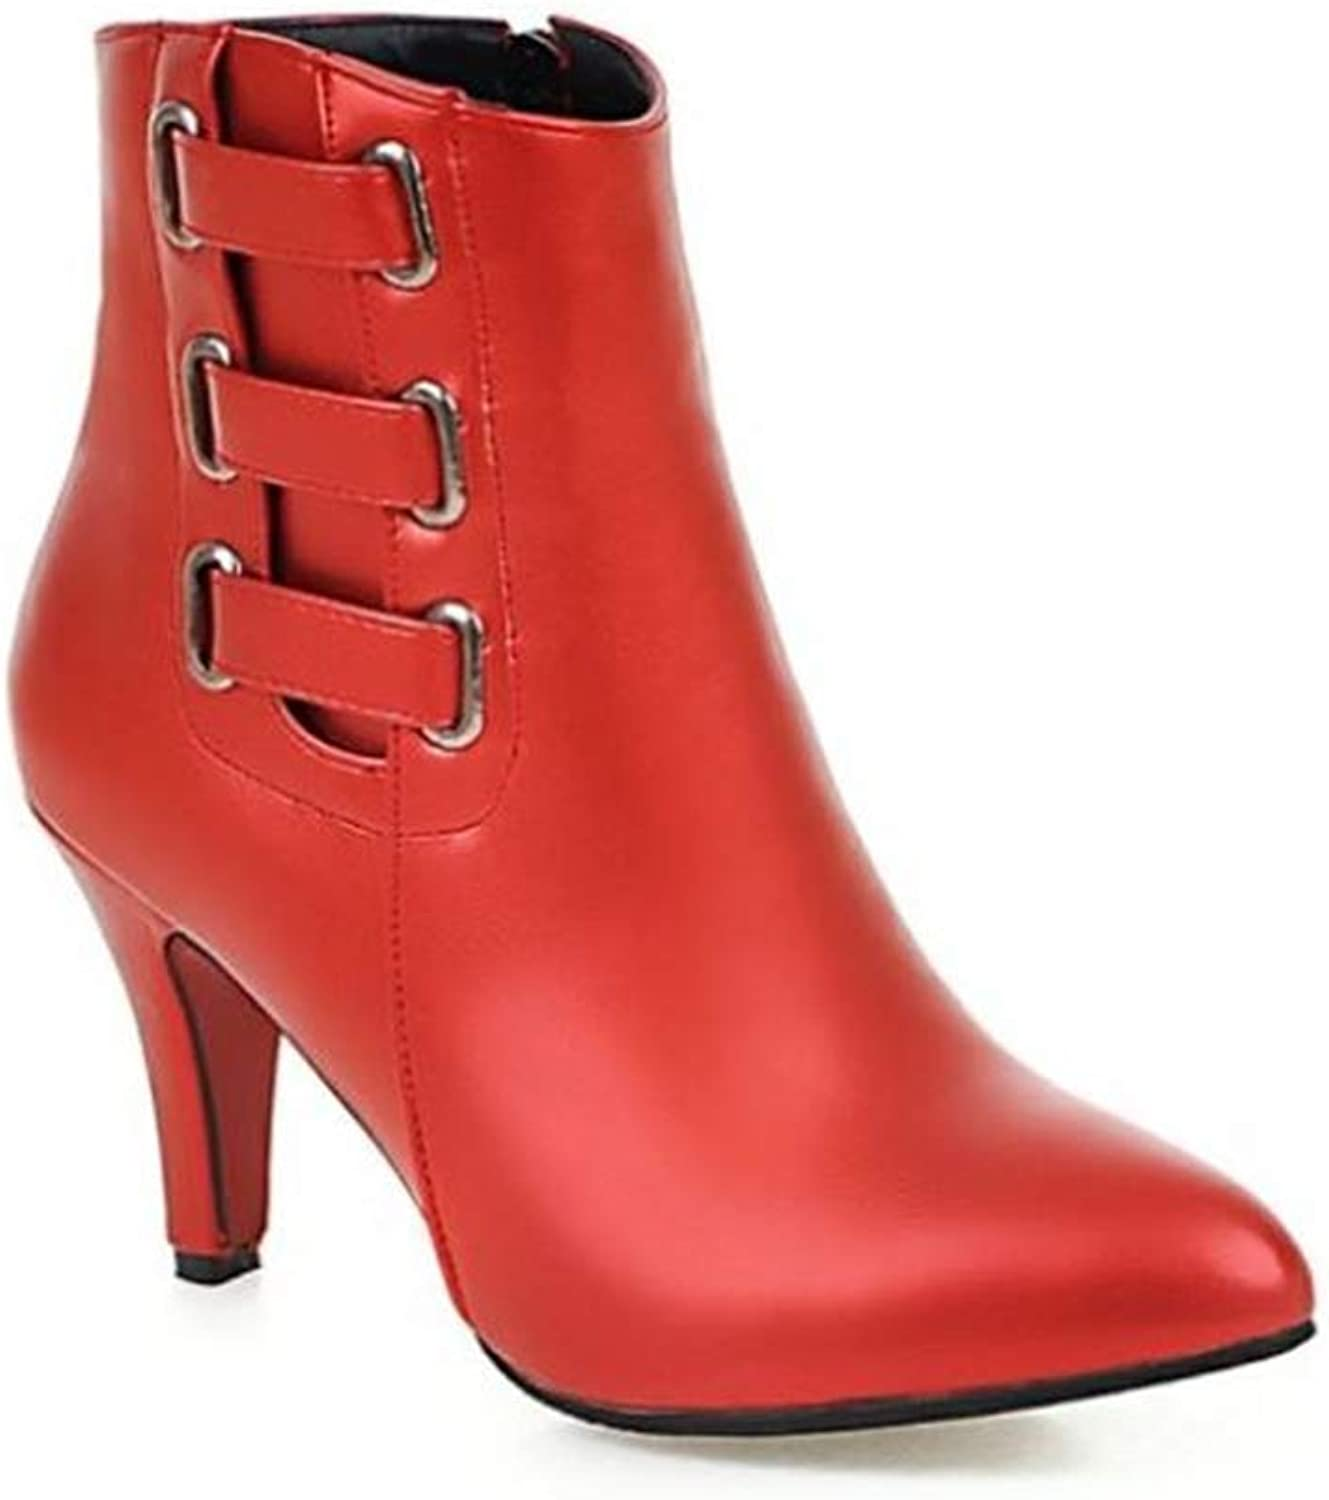 FORTUN Martin Boots Pointed Toe Women's Boots high Heel Ankle Boots